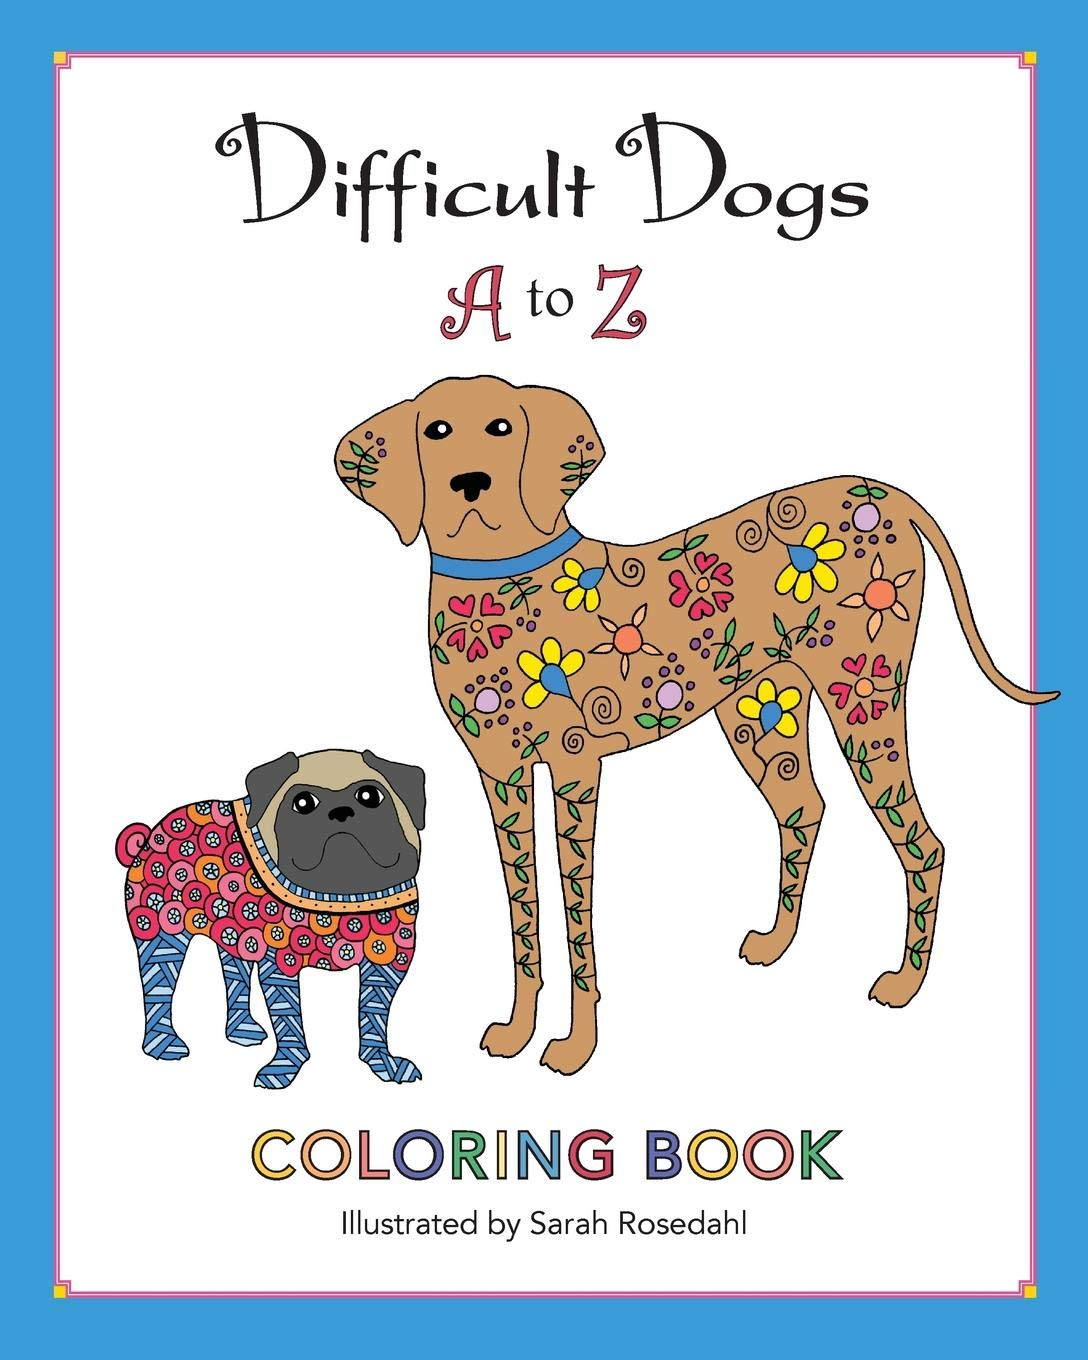 Amazon.com: Difficult Dogs A to Z: Coloring Book ...